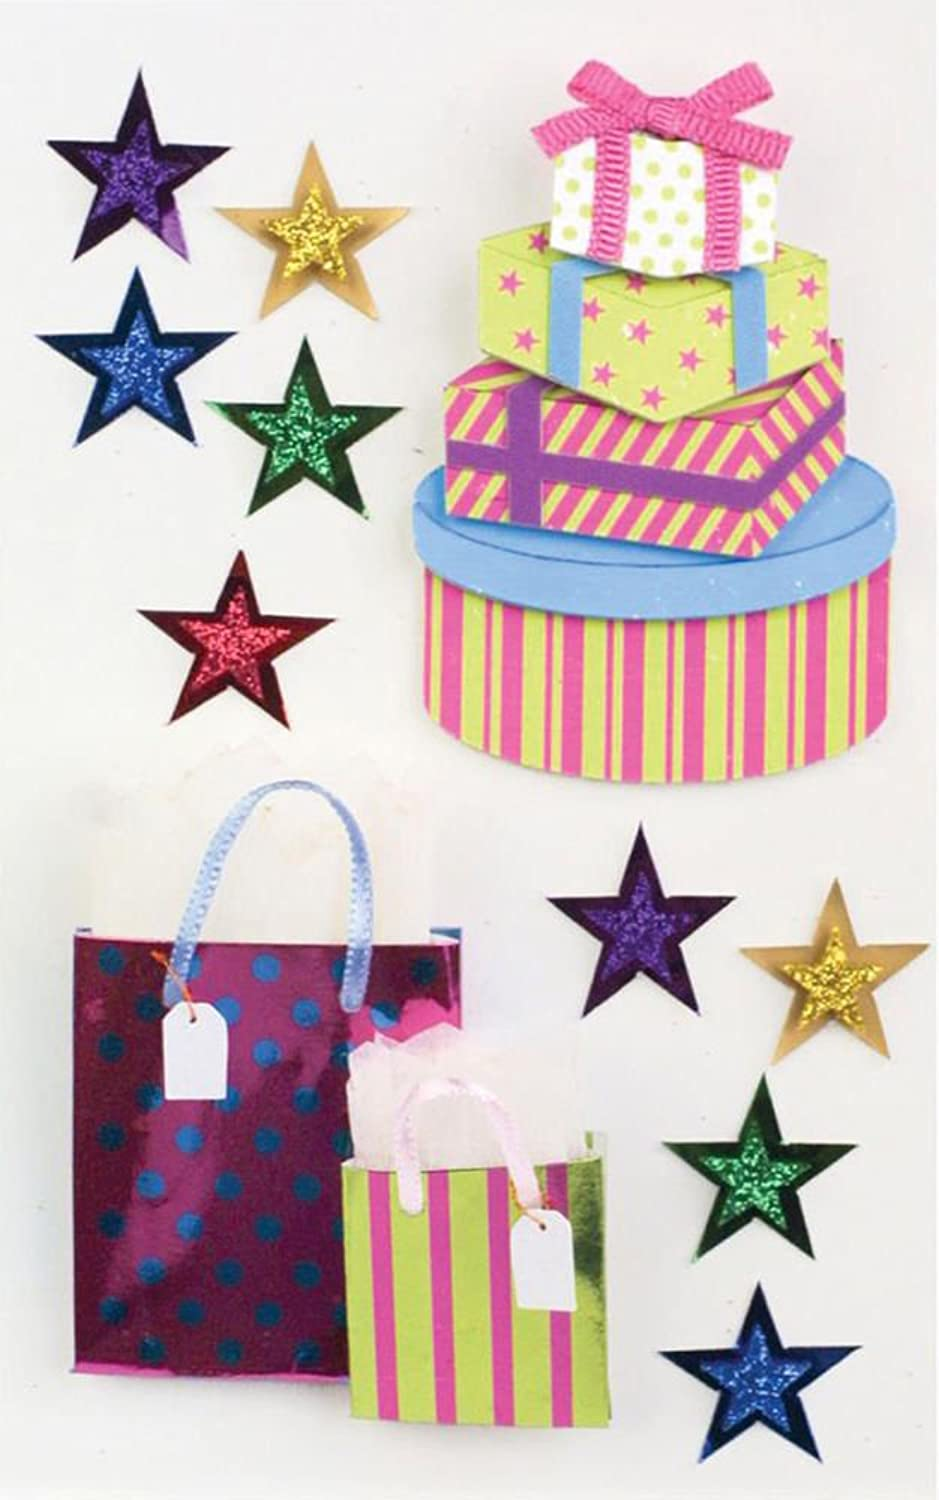 Sticker Embellishments Little B Birthday Gift Medium Stickers B00G81WNBY | | | Outlet Online Store  f748e3